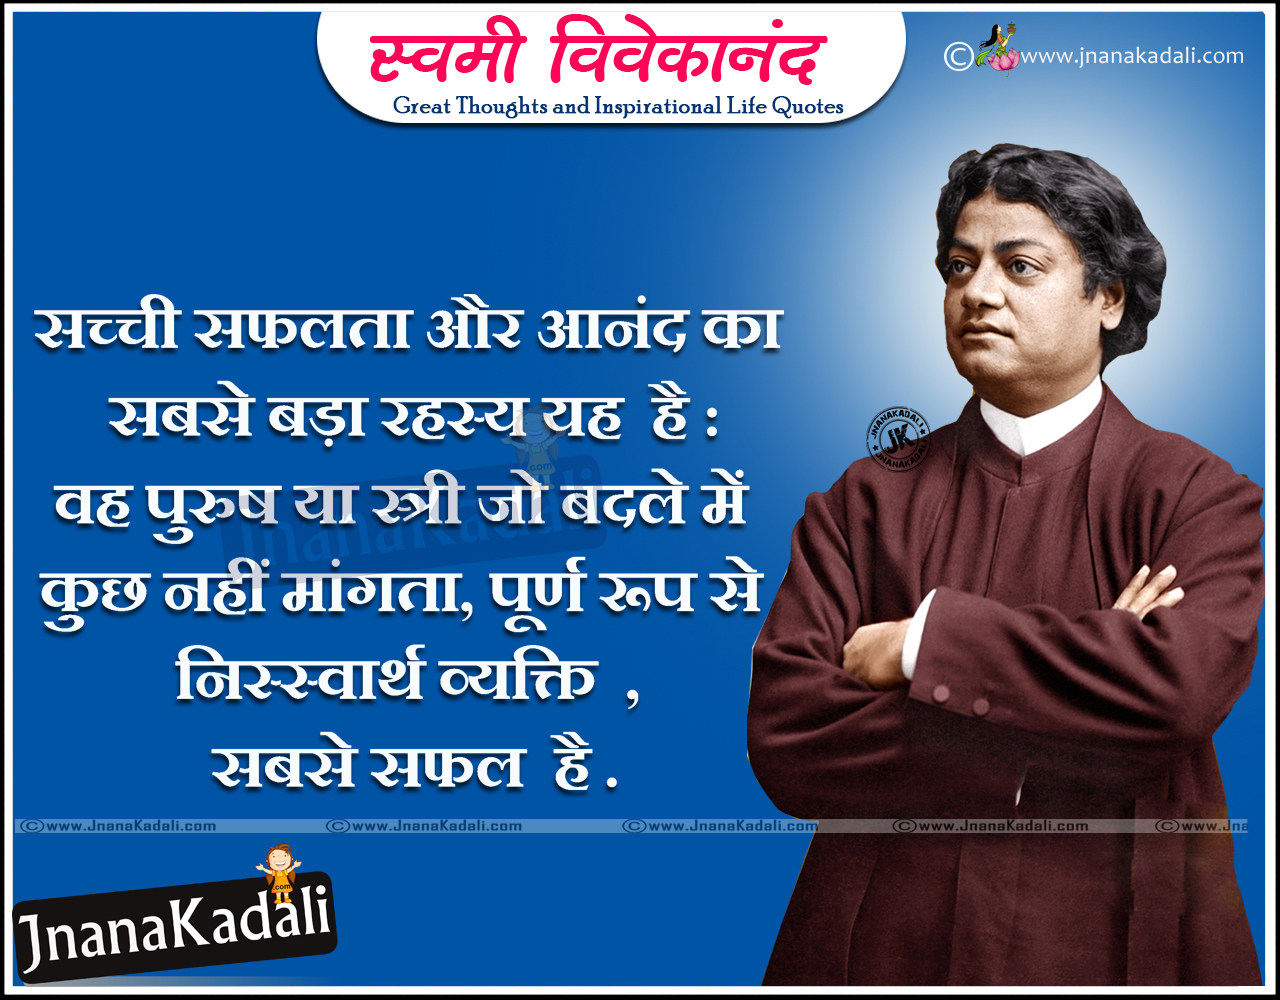 Swami Vivekananda Quotes Wallpapers In Tamil Swamiji T